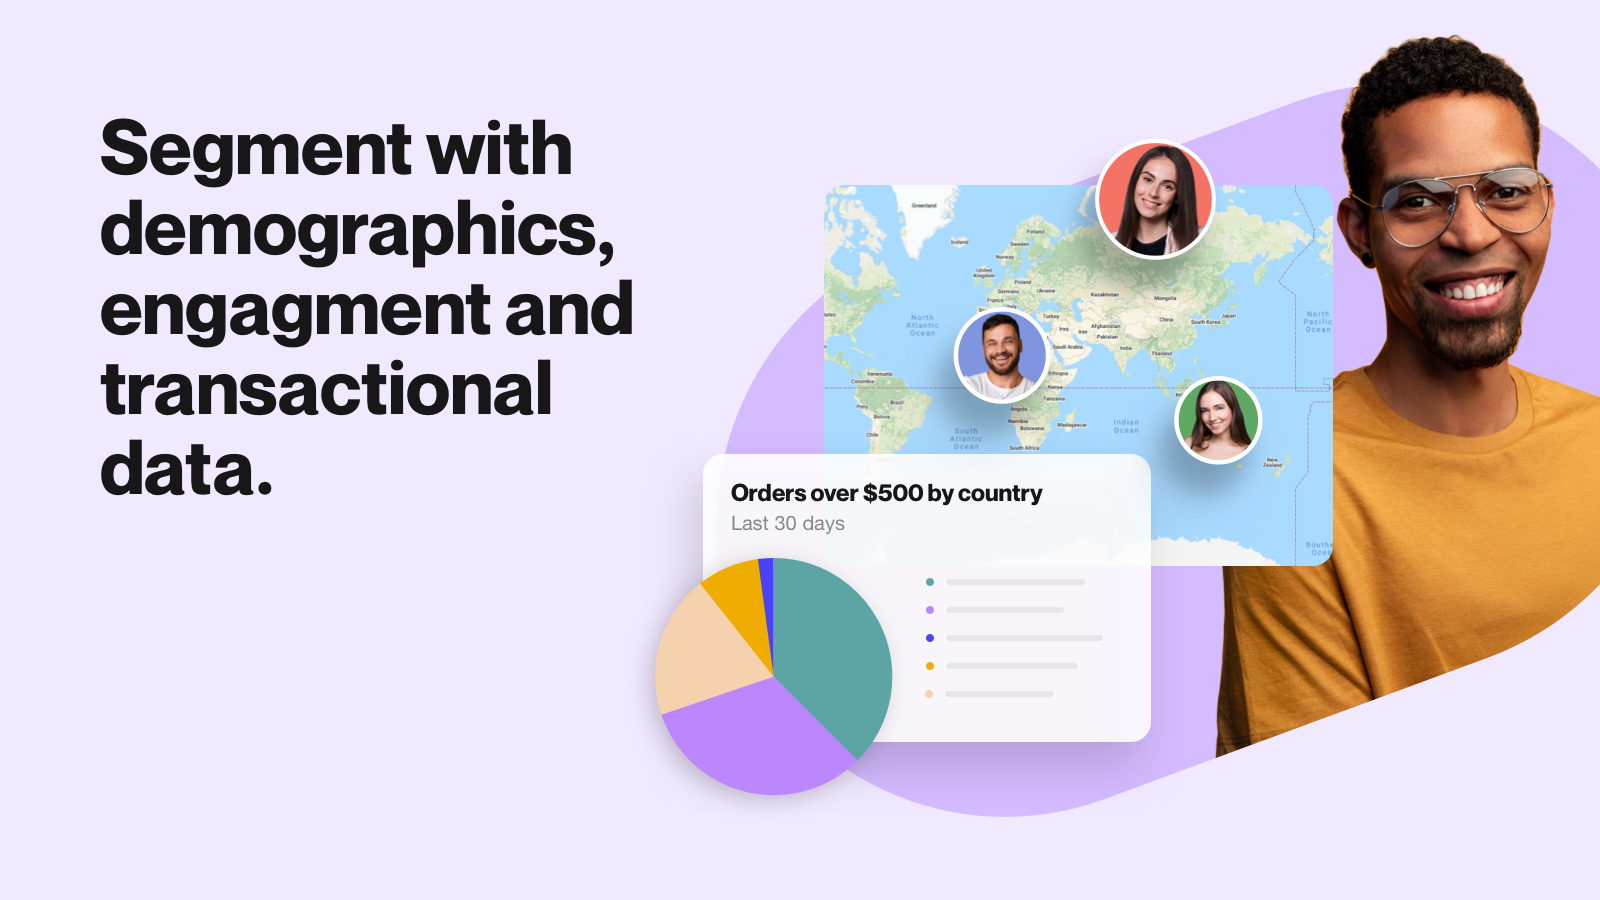 Segment with demographics, engagement and transactional data.